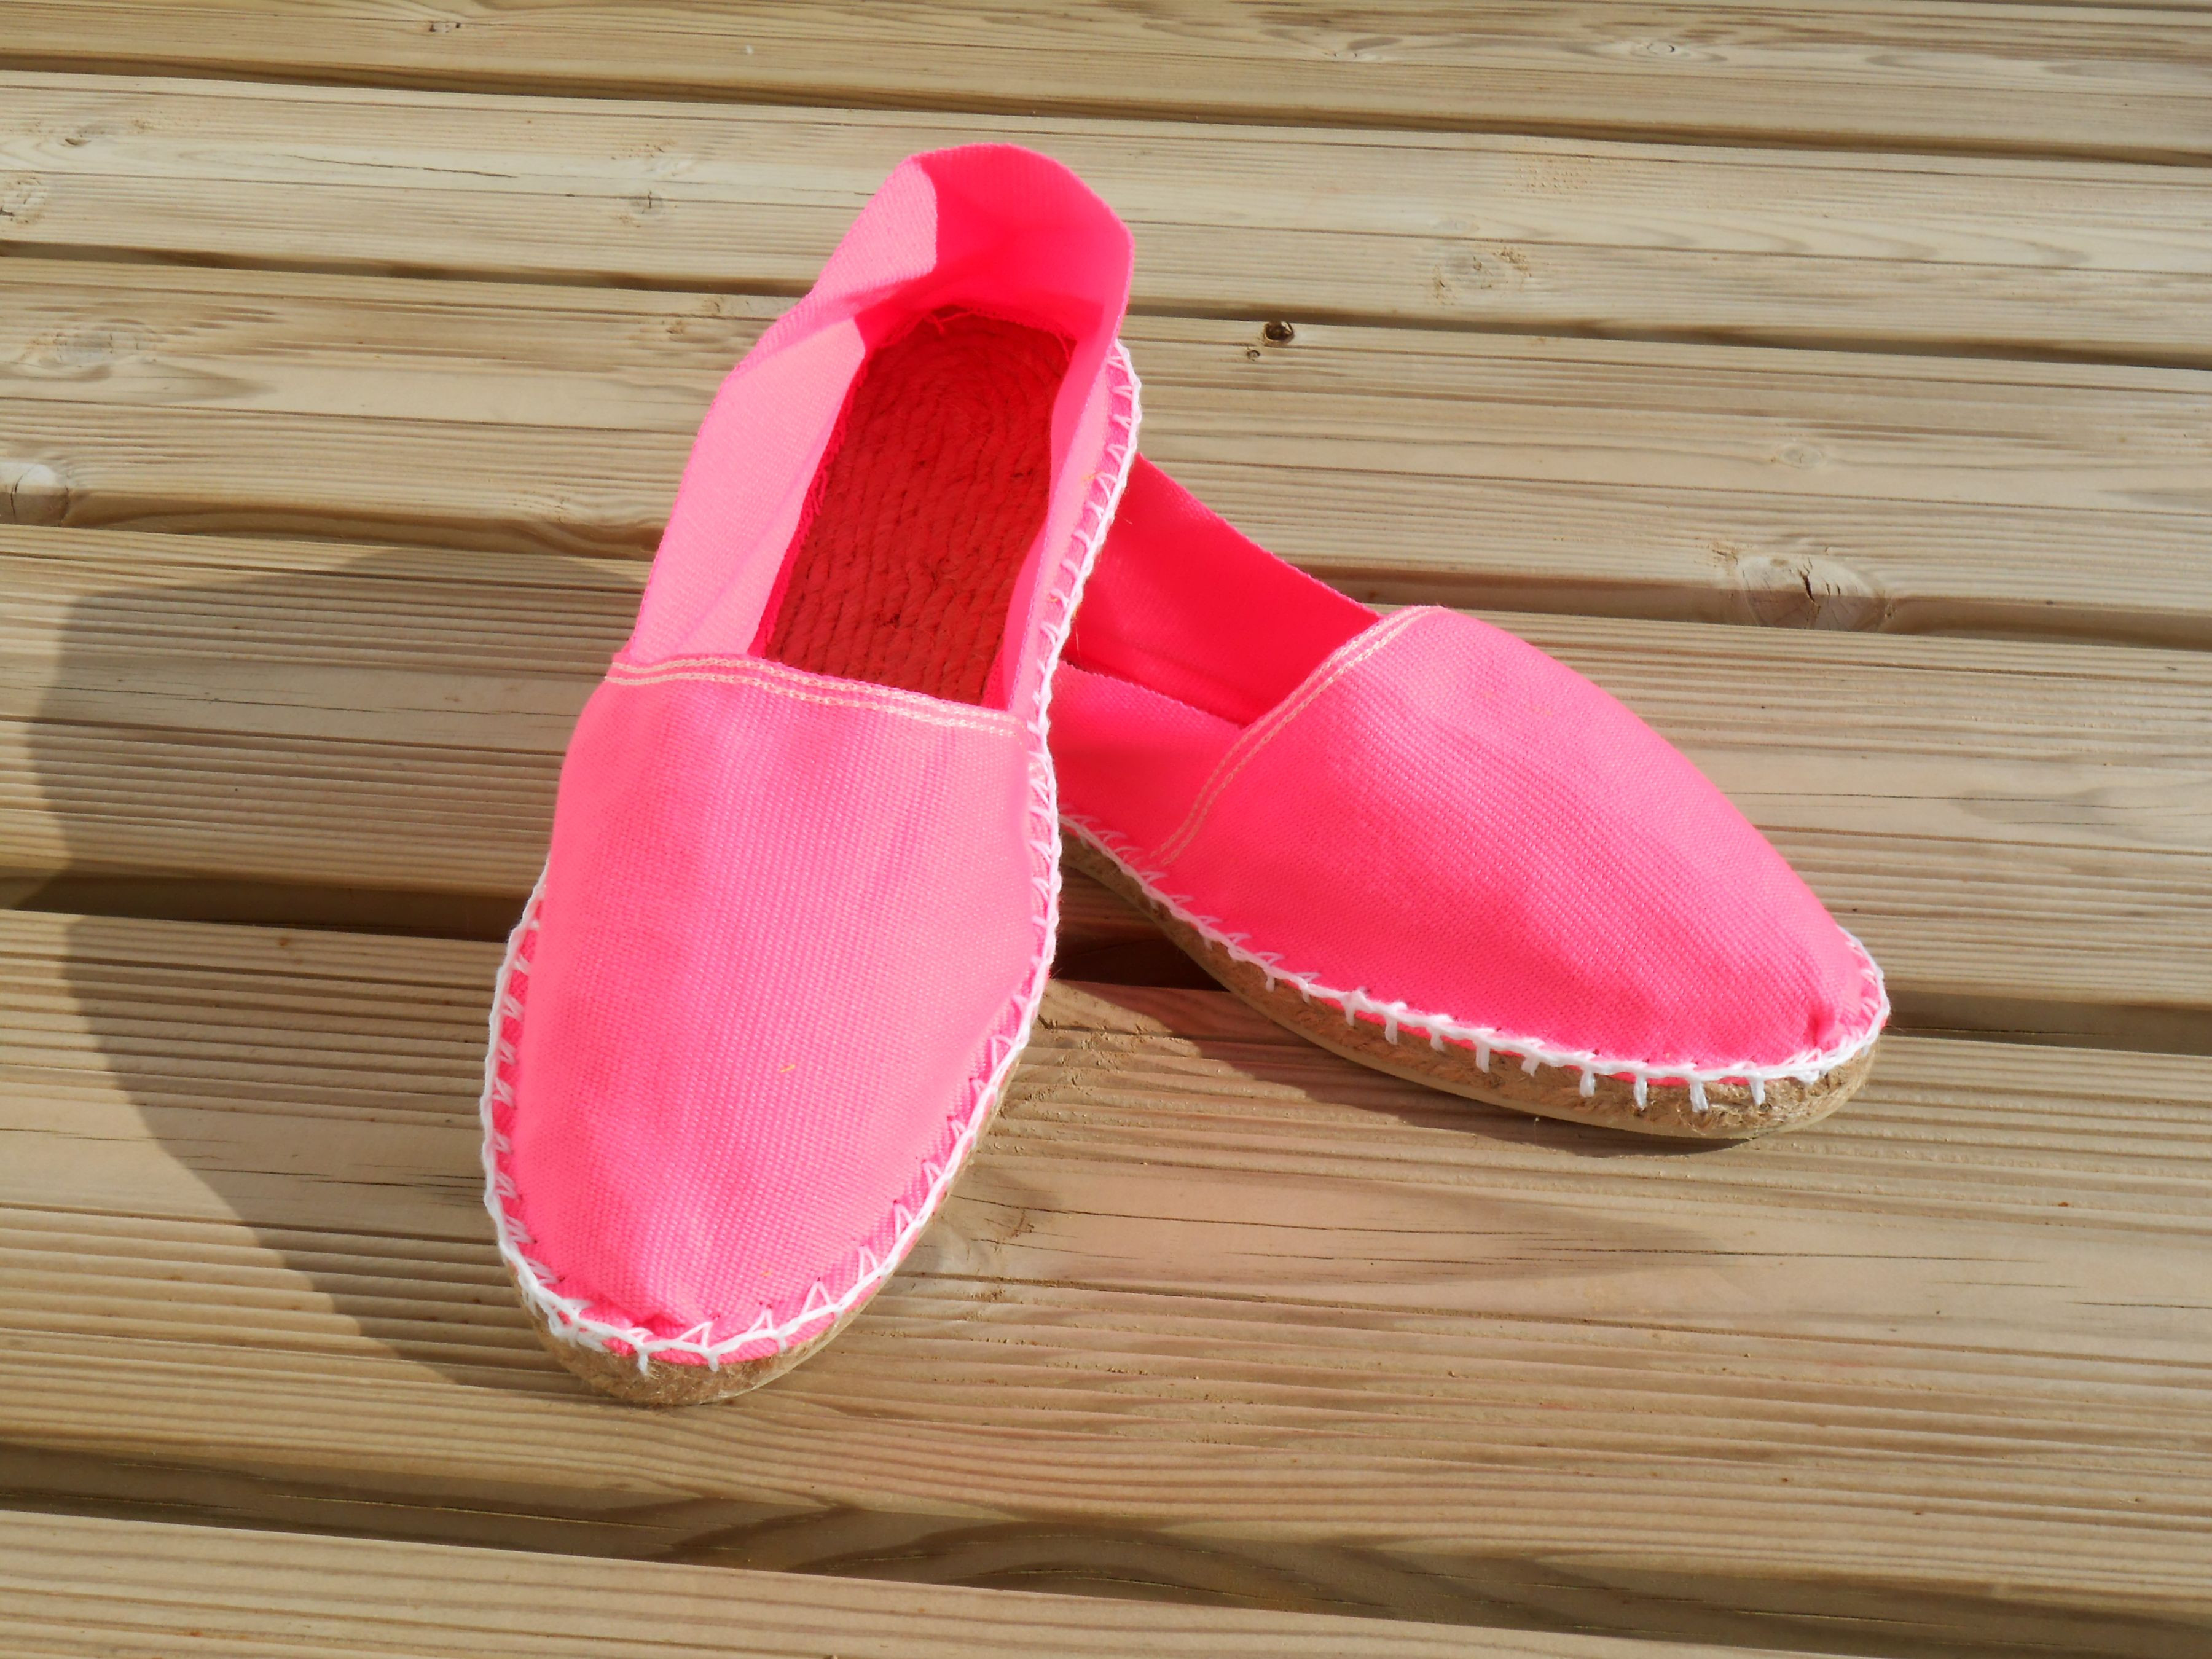 Espadrilles basques rose fluo taille 38